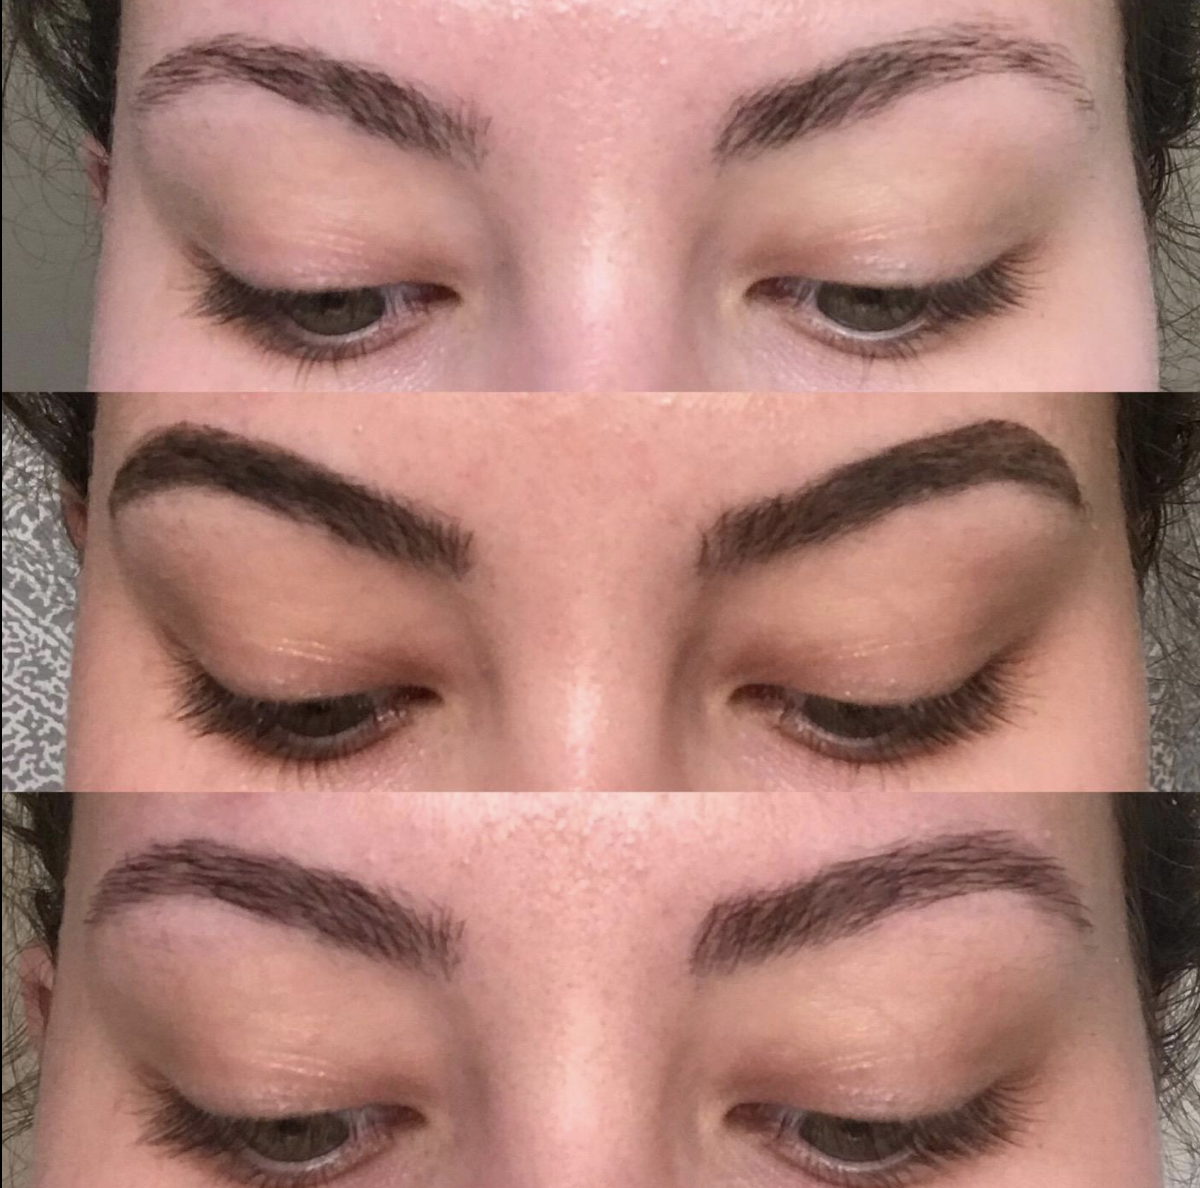 Reviewer's brows before the tint, during the tint, and after, to show the subtly more filled in, darker effect